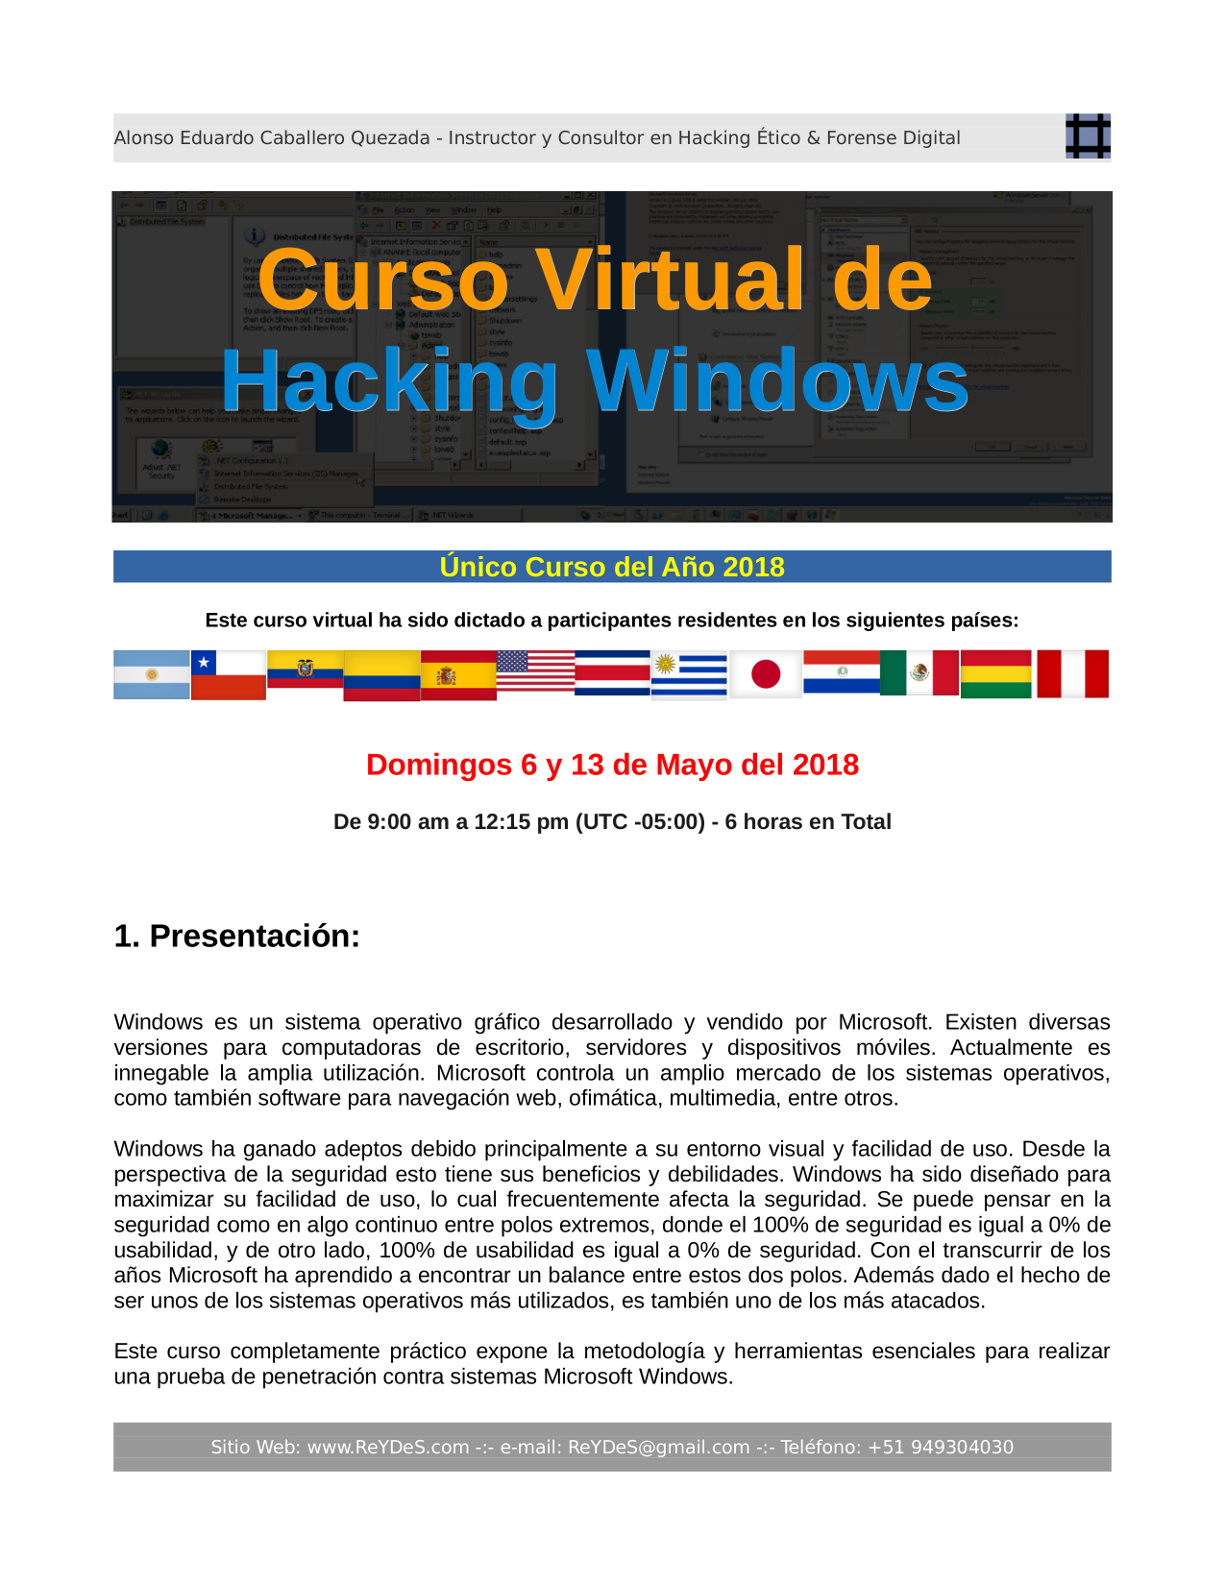 Único Curso Virtual Hacking Windows